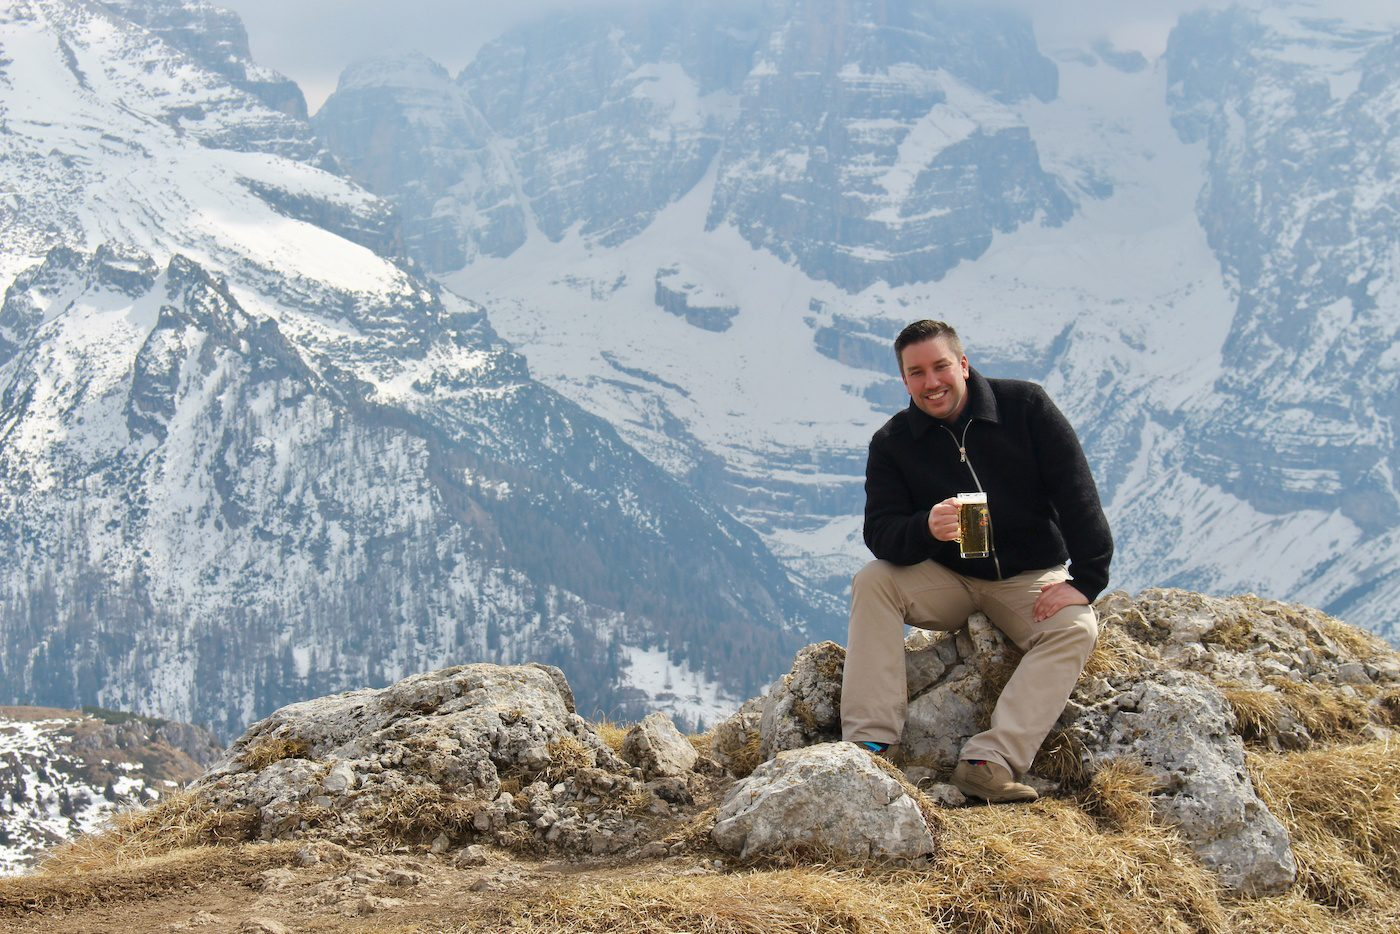 Relaxing in the Dolomites in the Italian Alps.